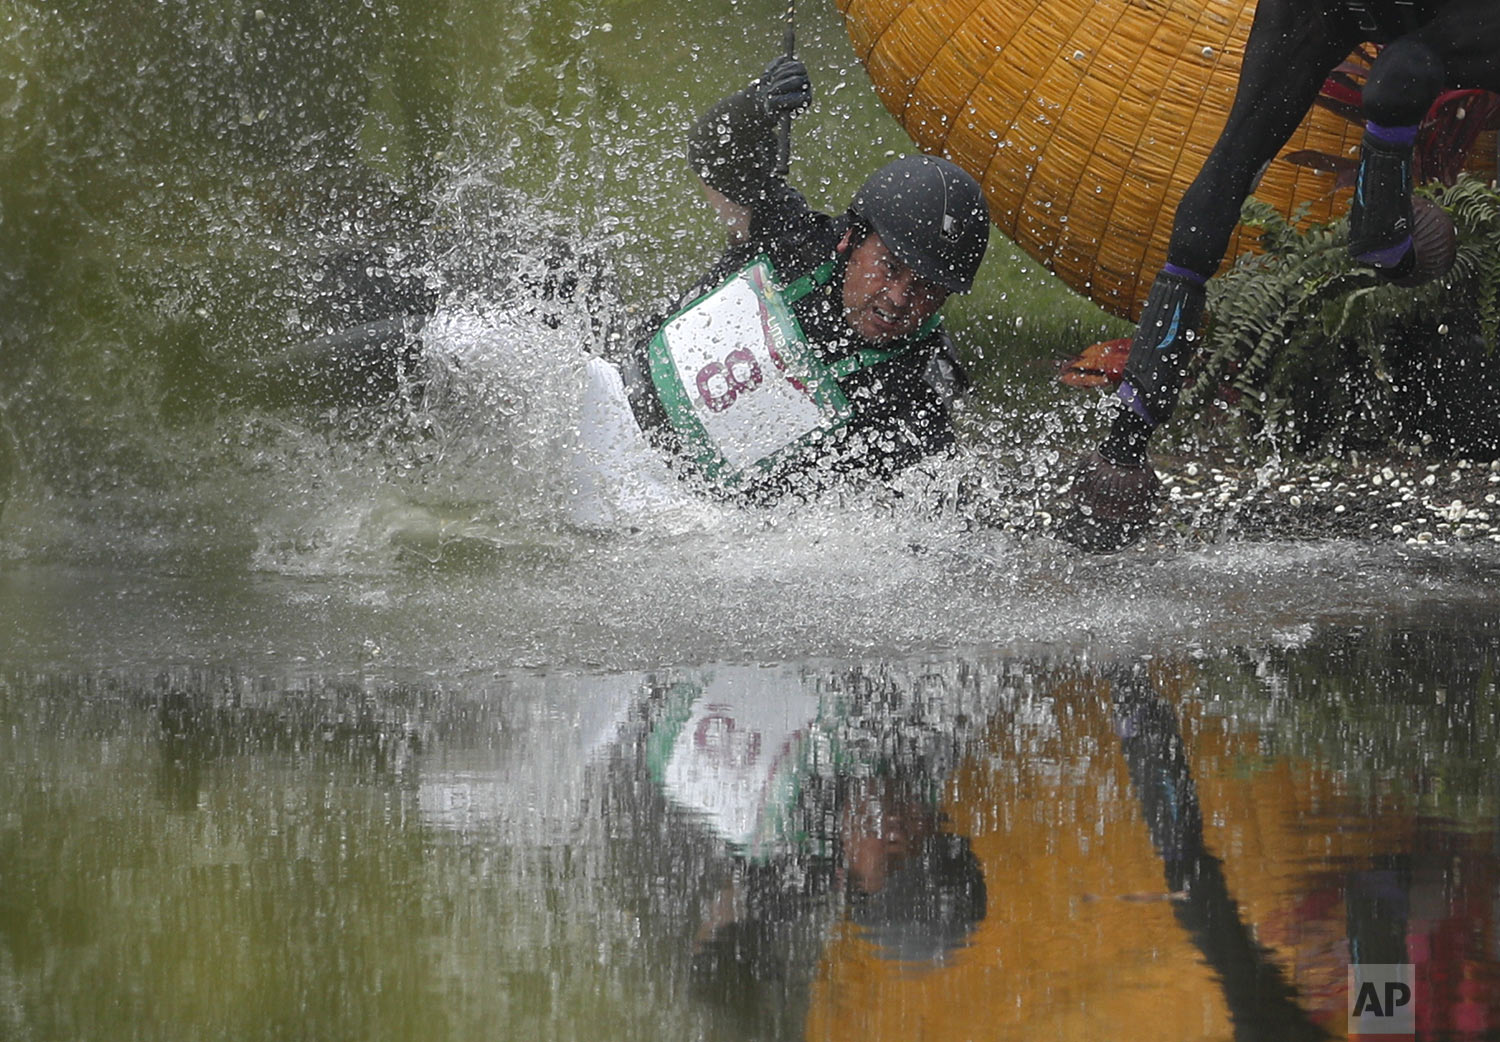 Colombia's Mauricio Bermudez lands in the water after being thrown when his horse Fernhill Nightshift tripped while crossing a jump, in the cross country discipline of equestrian eventing at the Pan American Games in Lima, Peru, Saturday, Aug. 3, 2019. (AP Photo/Rebecca Blackwell)